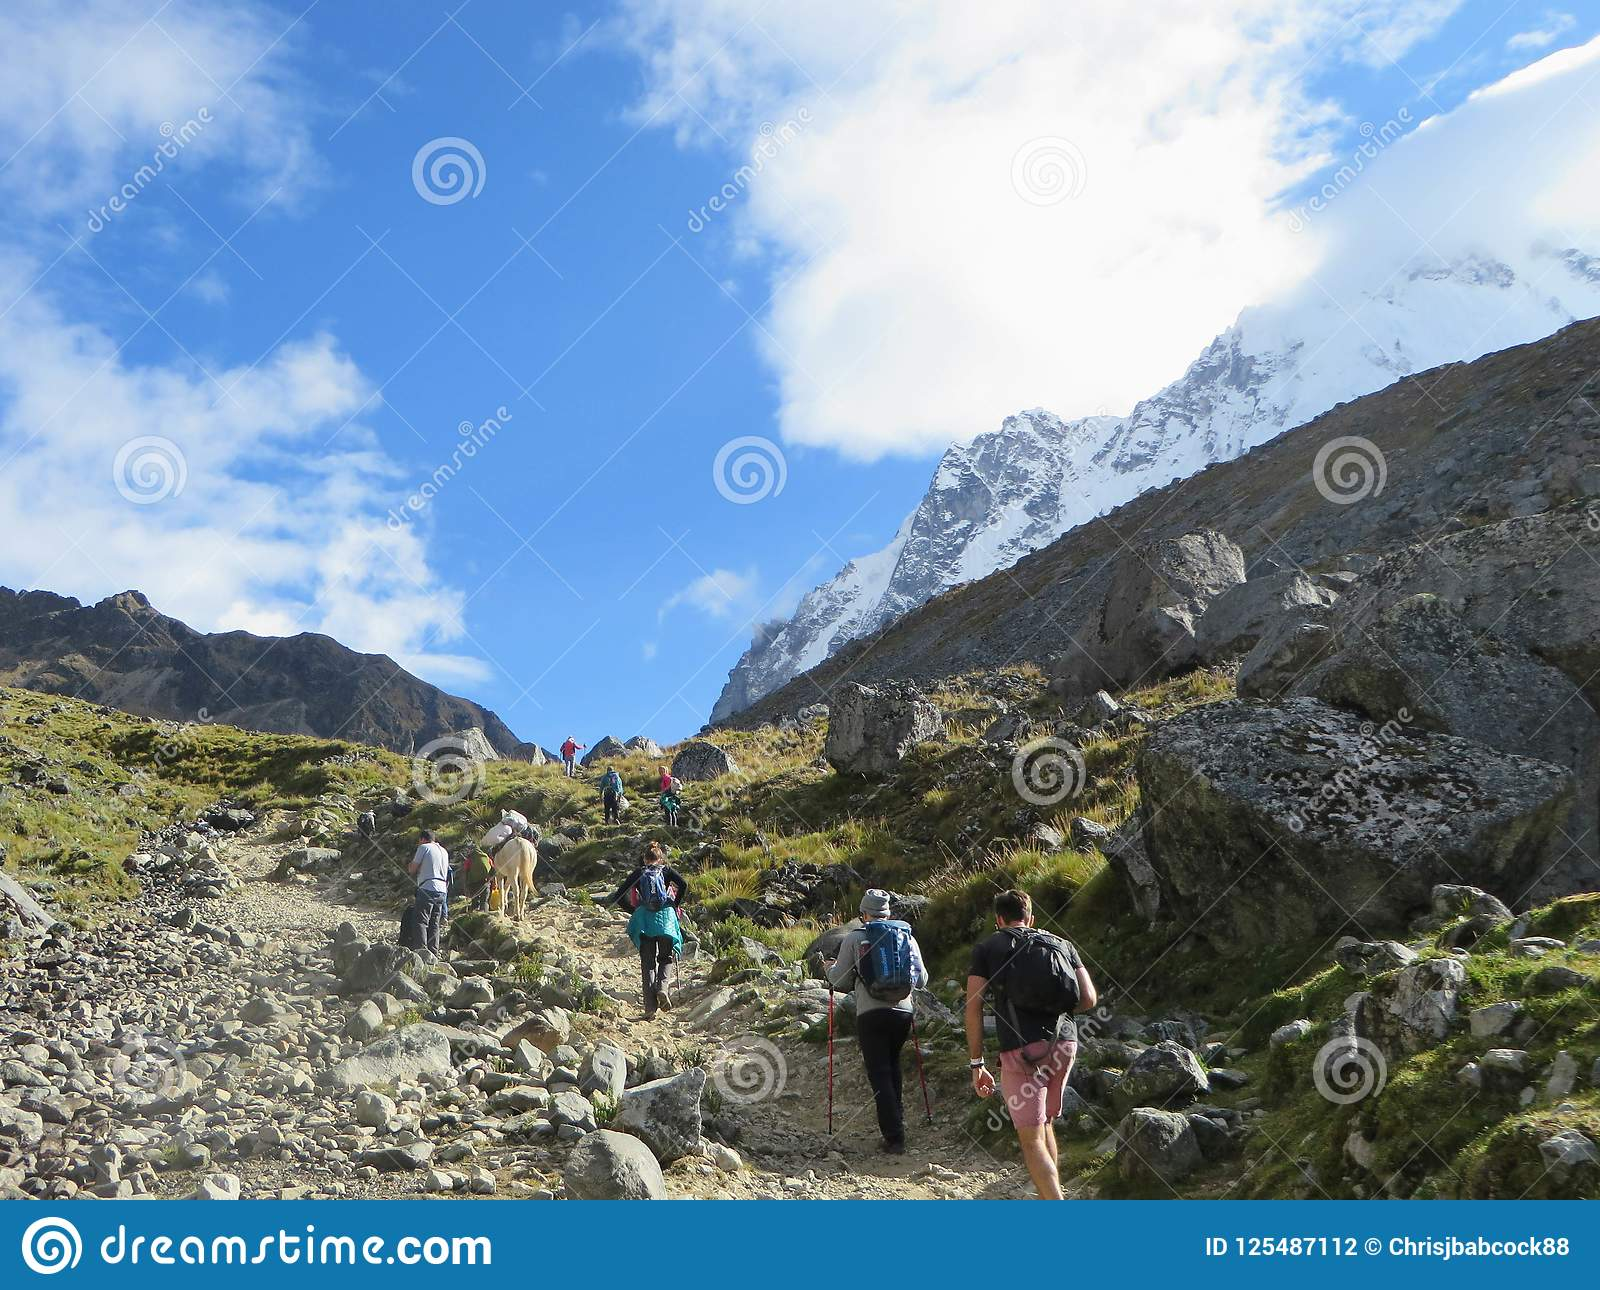 Cusco Province, Peru - May 8th, 2016: A young group of international hikers, led by their local Inca guide, navigate the Andes mo